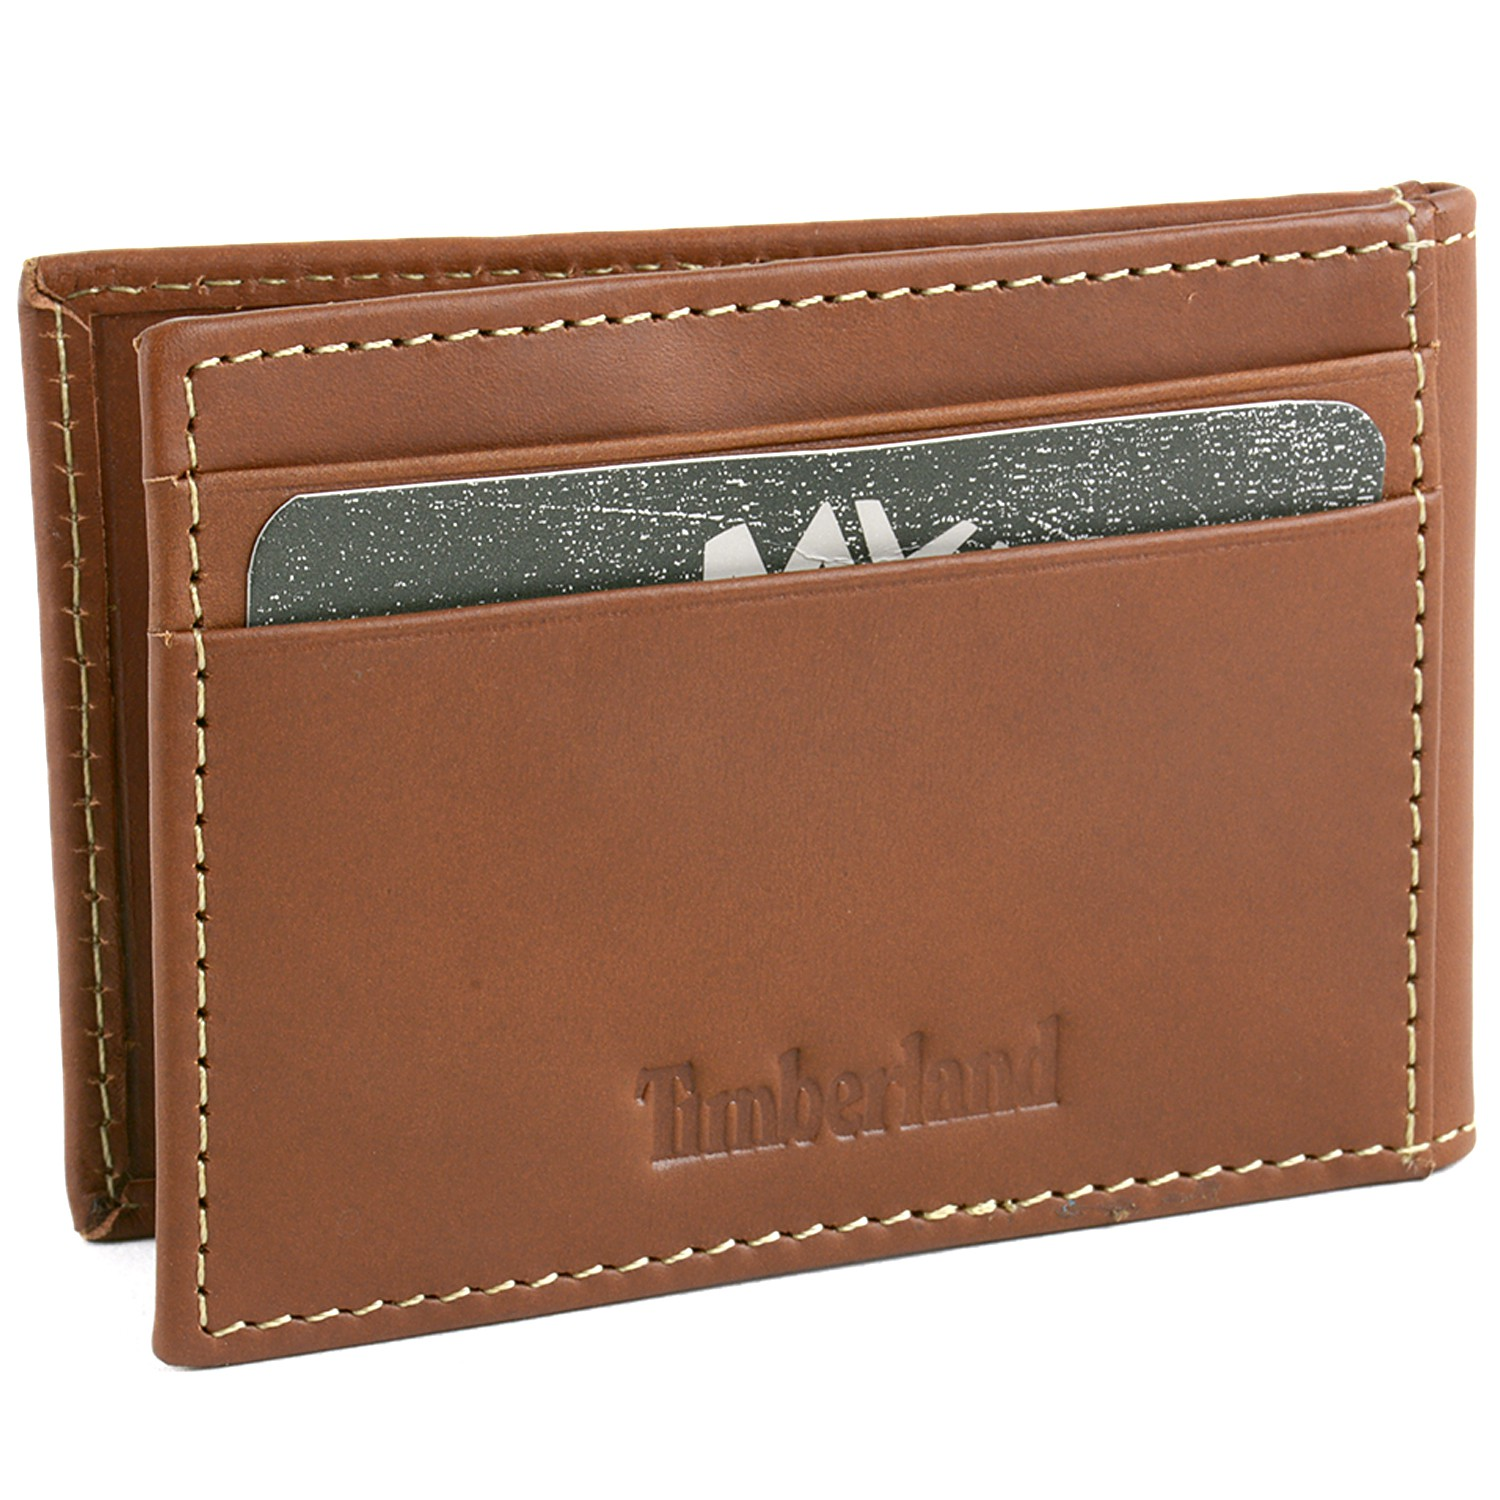 6eb85606b312 Leather Bi-Fold money clip wallets with 3 credit card slots and an ID holder.  Top Selling Rfid Blocking ...